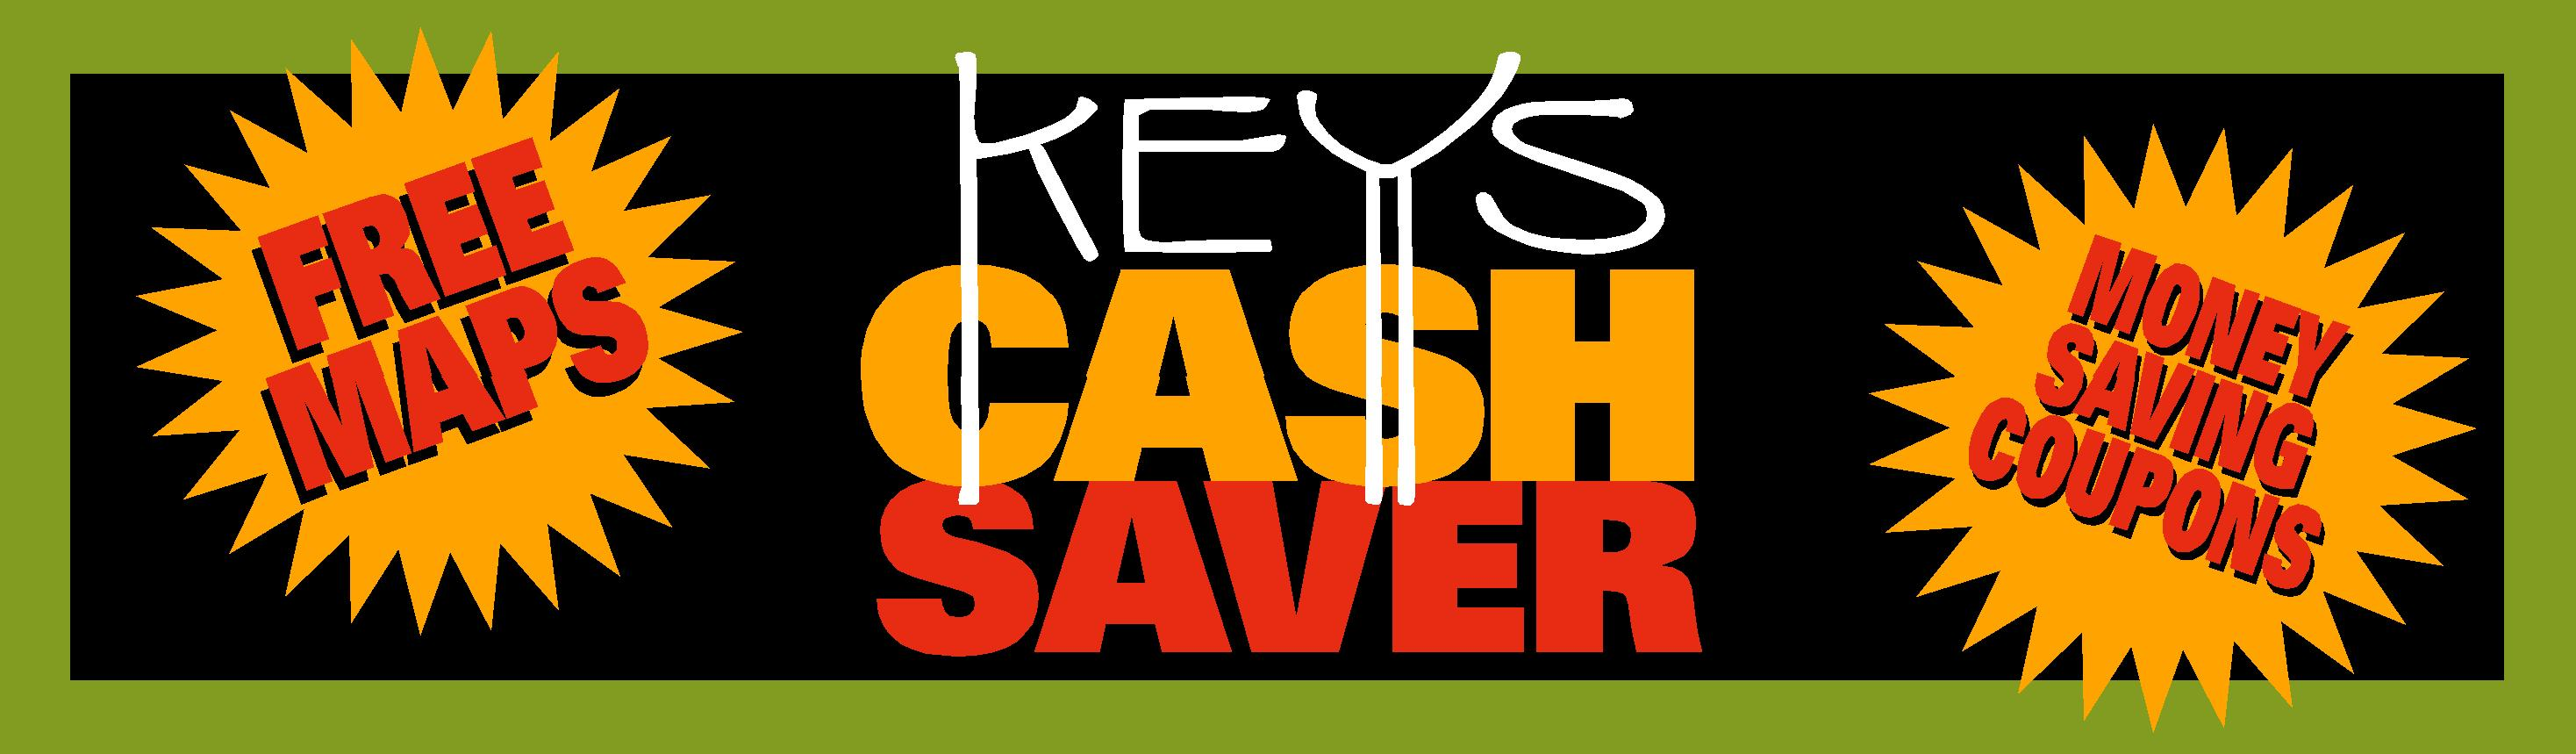 Key West / Florida Keys Money Saving Discount Coupons